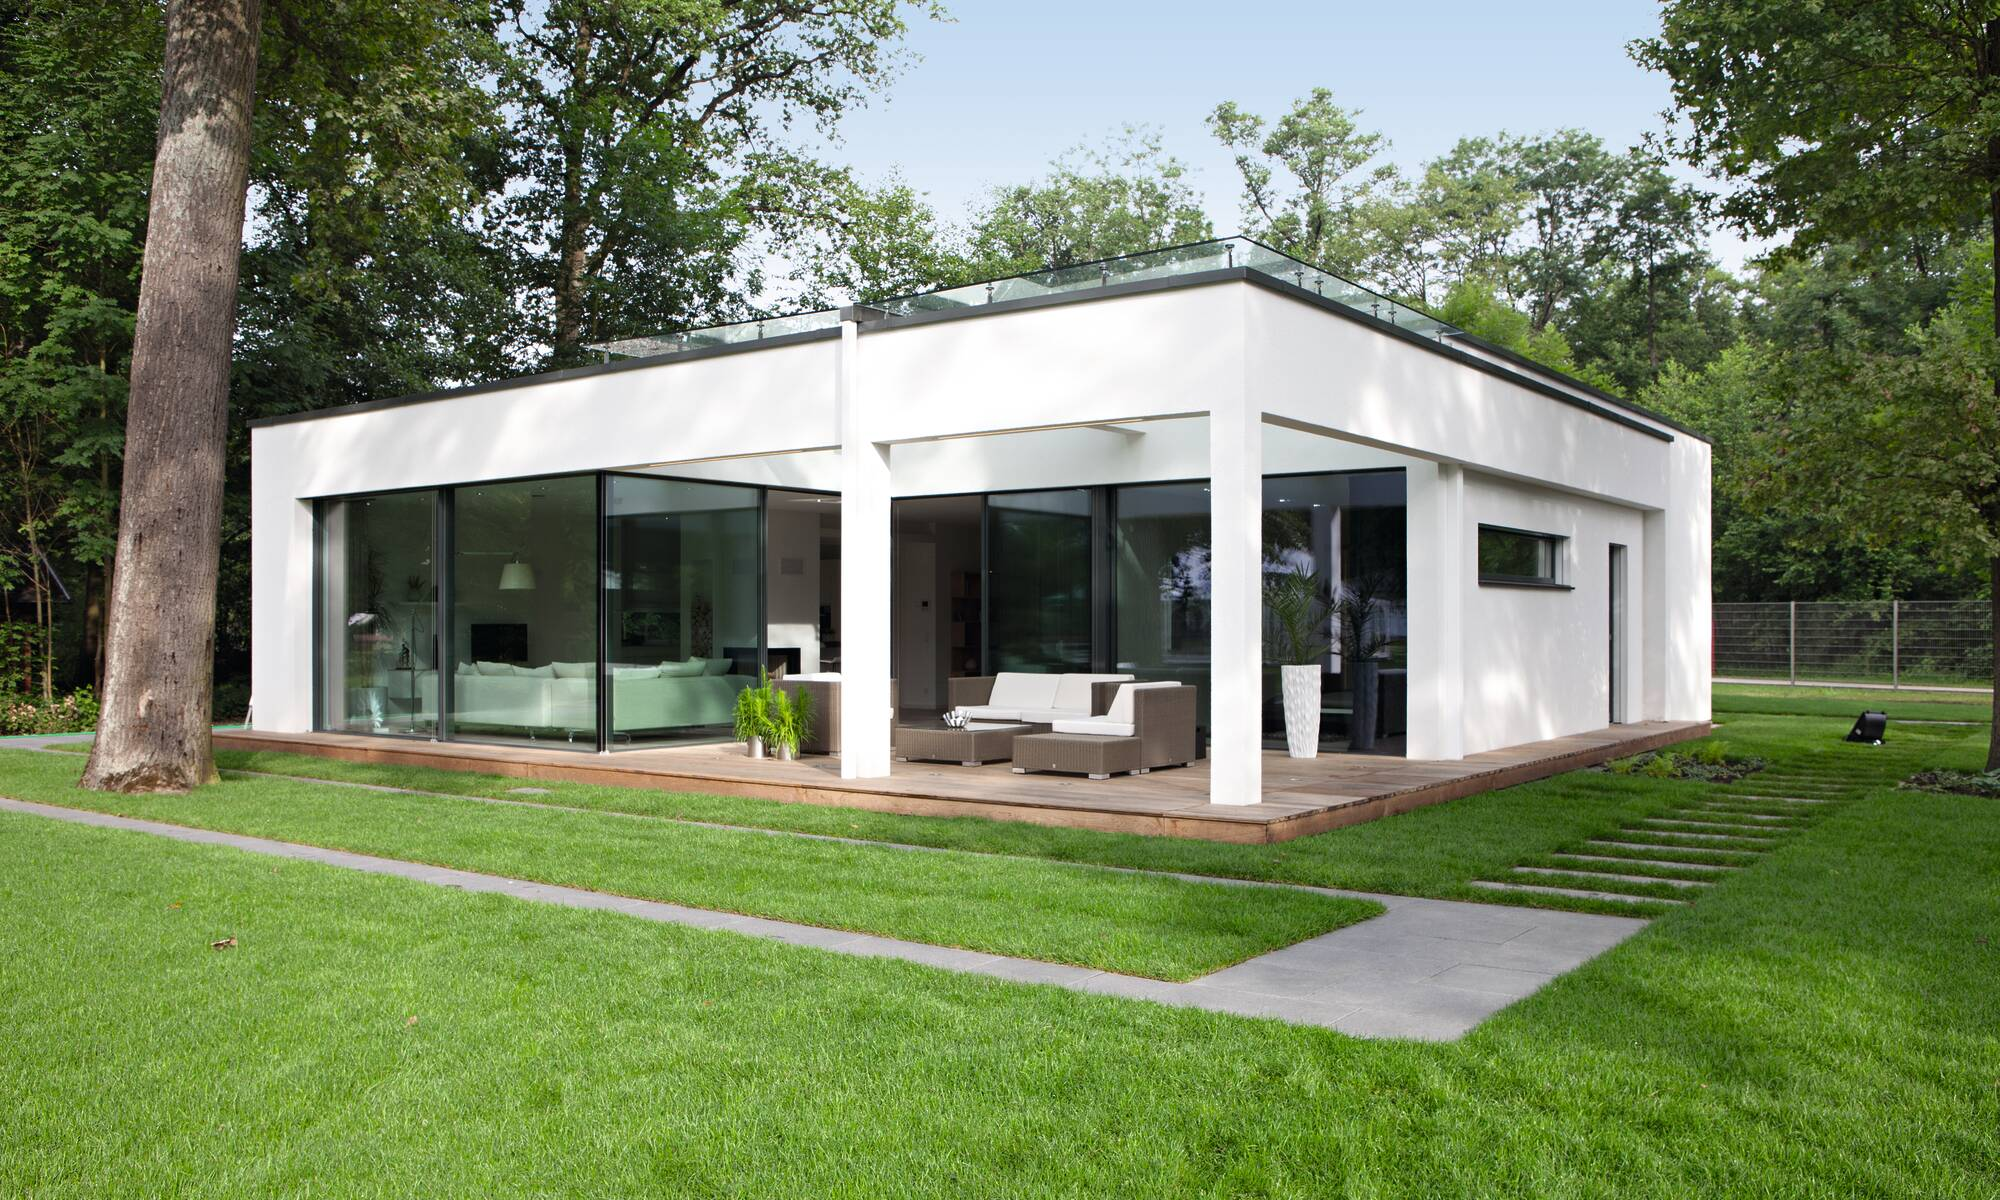 Spacious And Contemporary Prefabricated Bungalow With Bauhaus Architecture